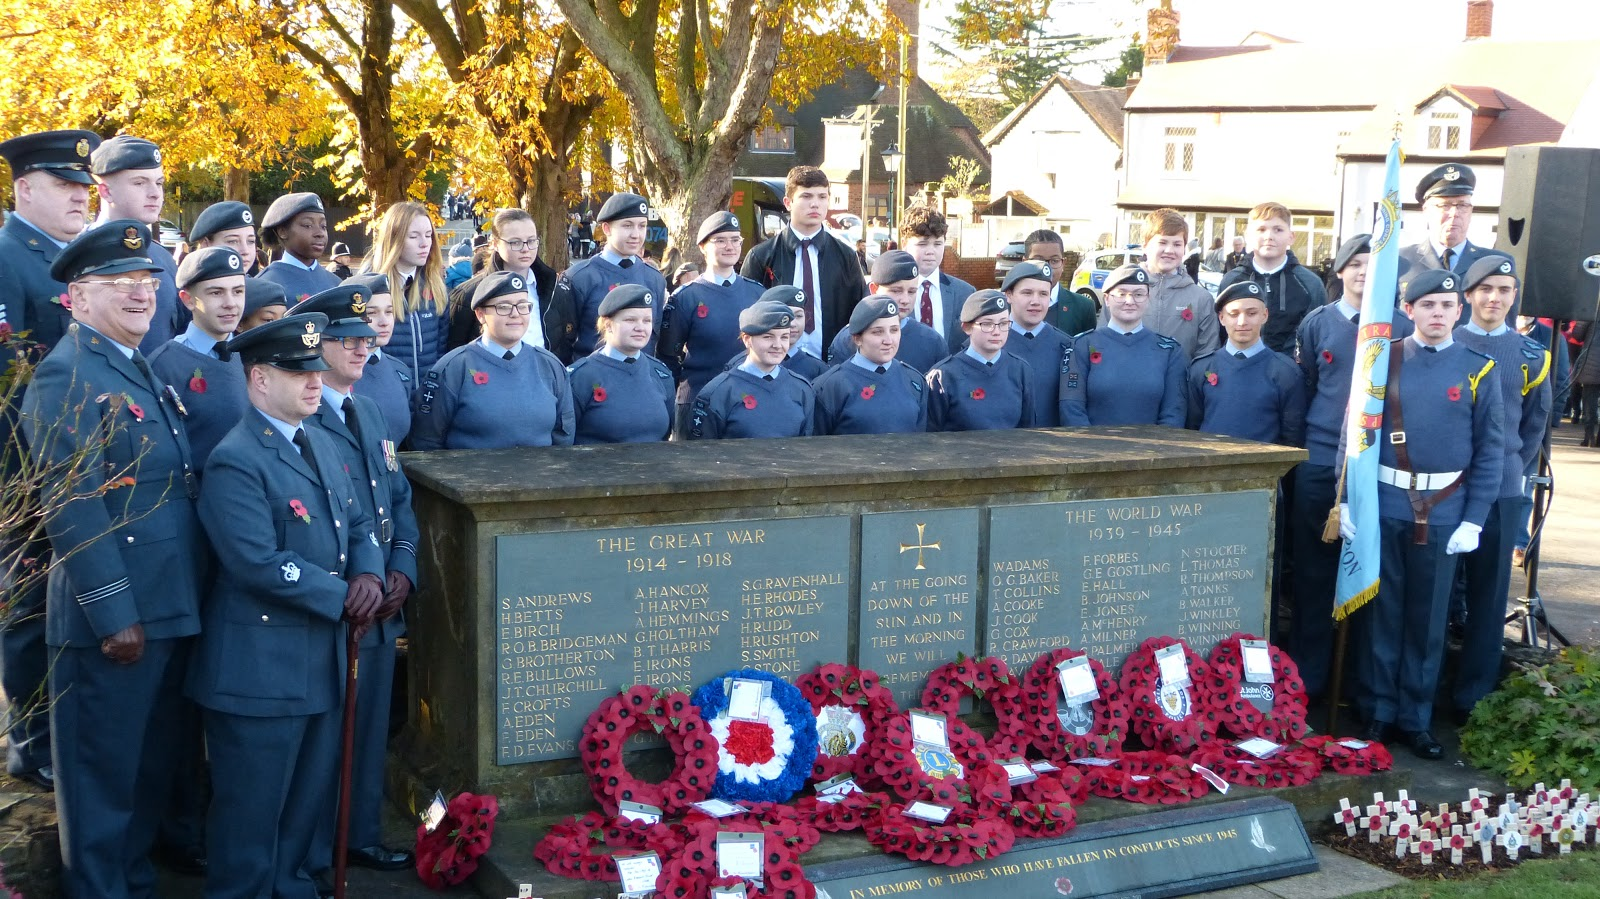 Air Cadets Remembrance parade 2019 in Castle Bromwich